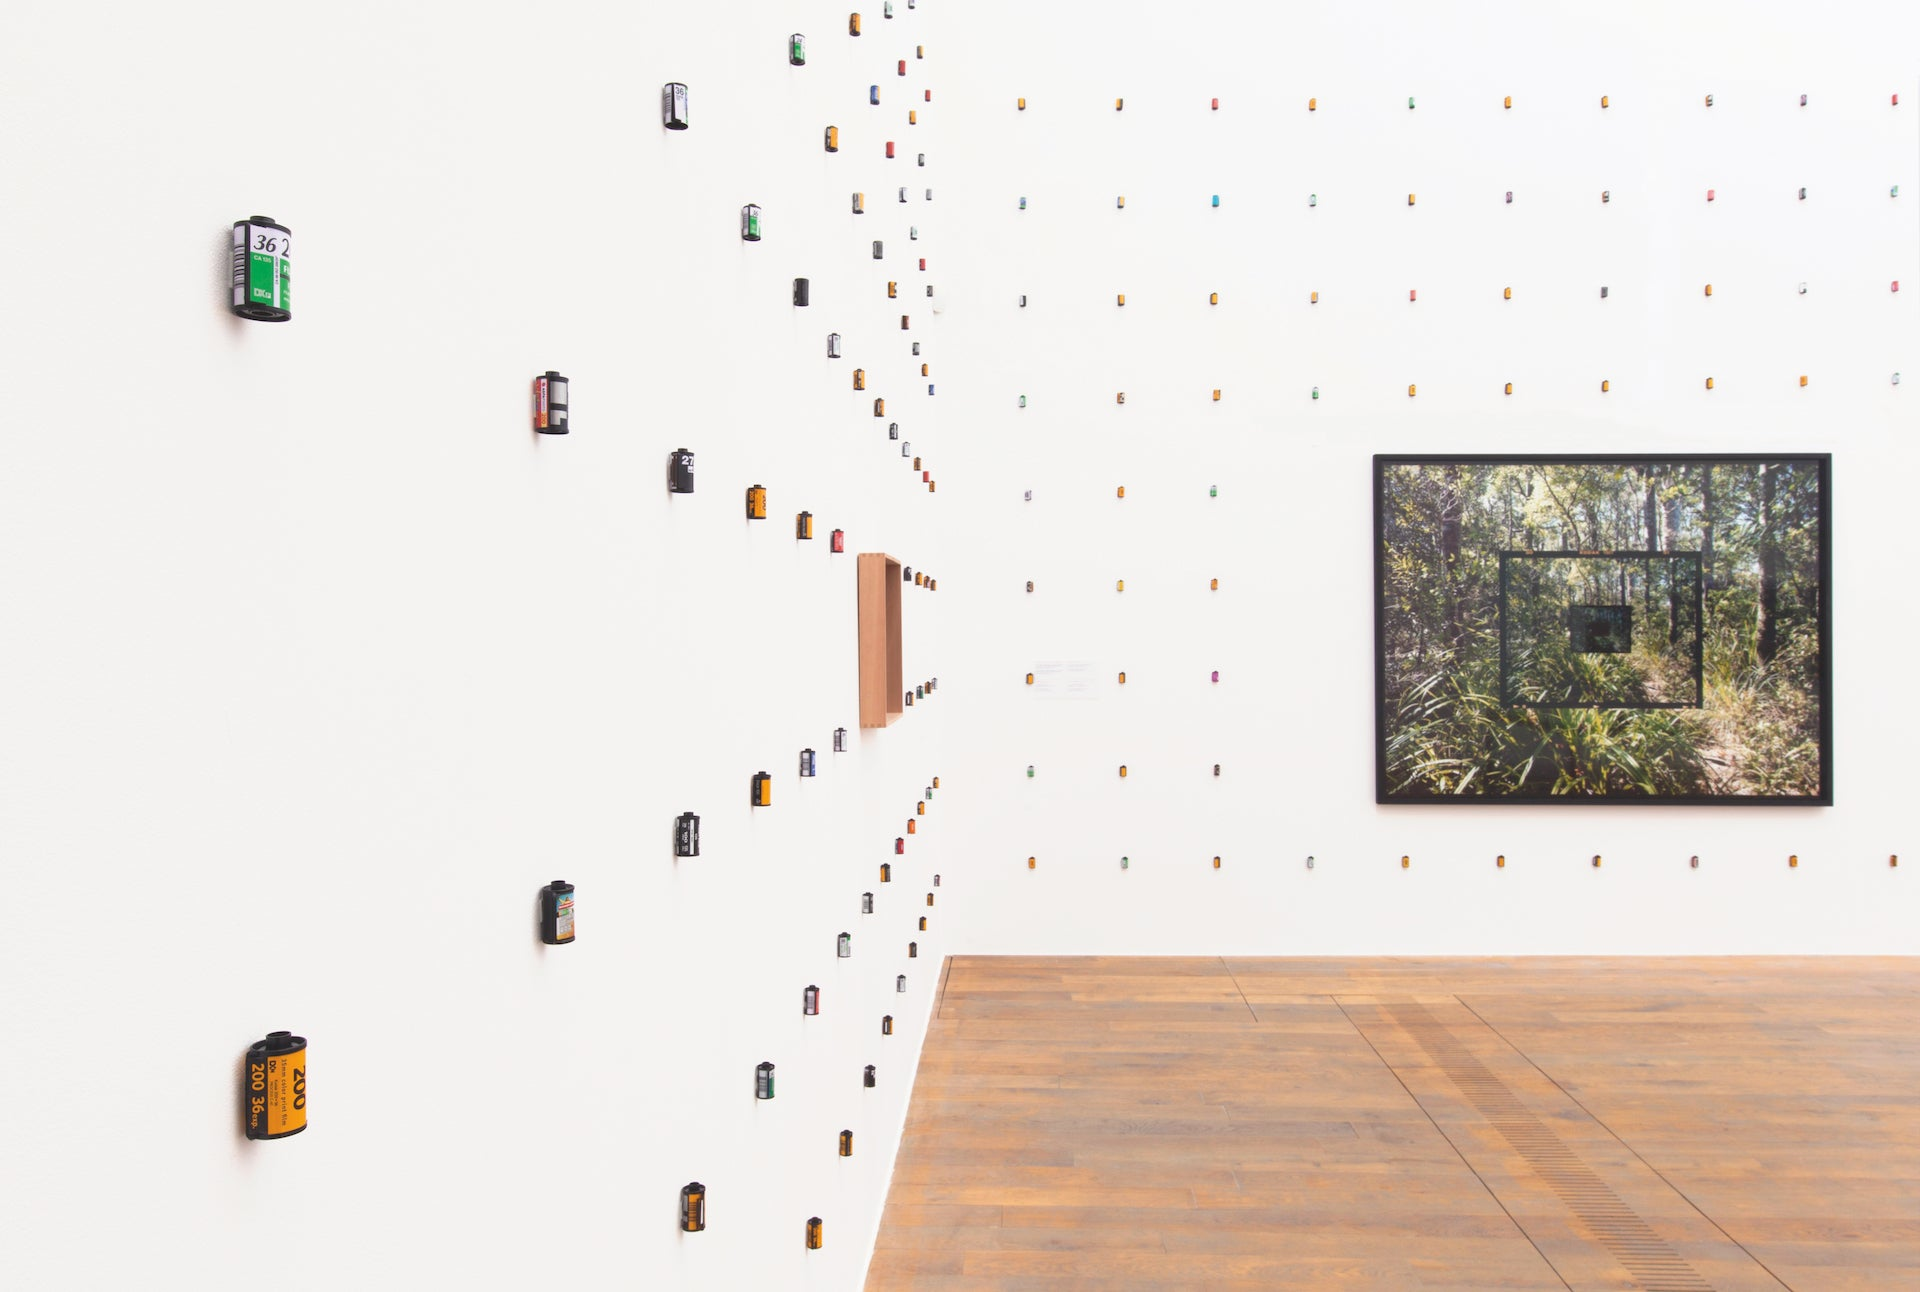 Exhibition view of Mladen Bizumic: Kodak Employed 140, 000 People. Instagram, curated by Adam Carr and presented at MOSTYN in Wales in 2016-17. The project explored the global rise, domination, and downfall of the Eastman Kodak Company, a lens through which to see the broader implications of the societal shift from analog to digital photography and social media platforms. Photo © Dewi Lloyd; courtesy of the artist and Georg Kargl Fine Arts, Vienna